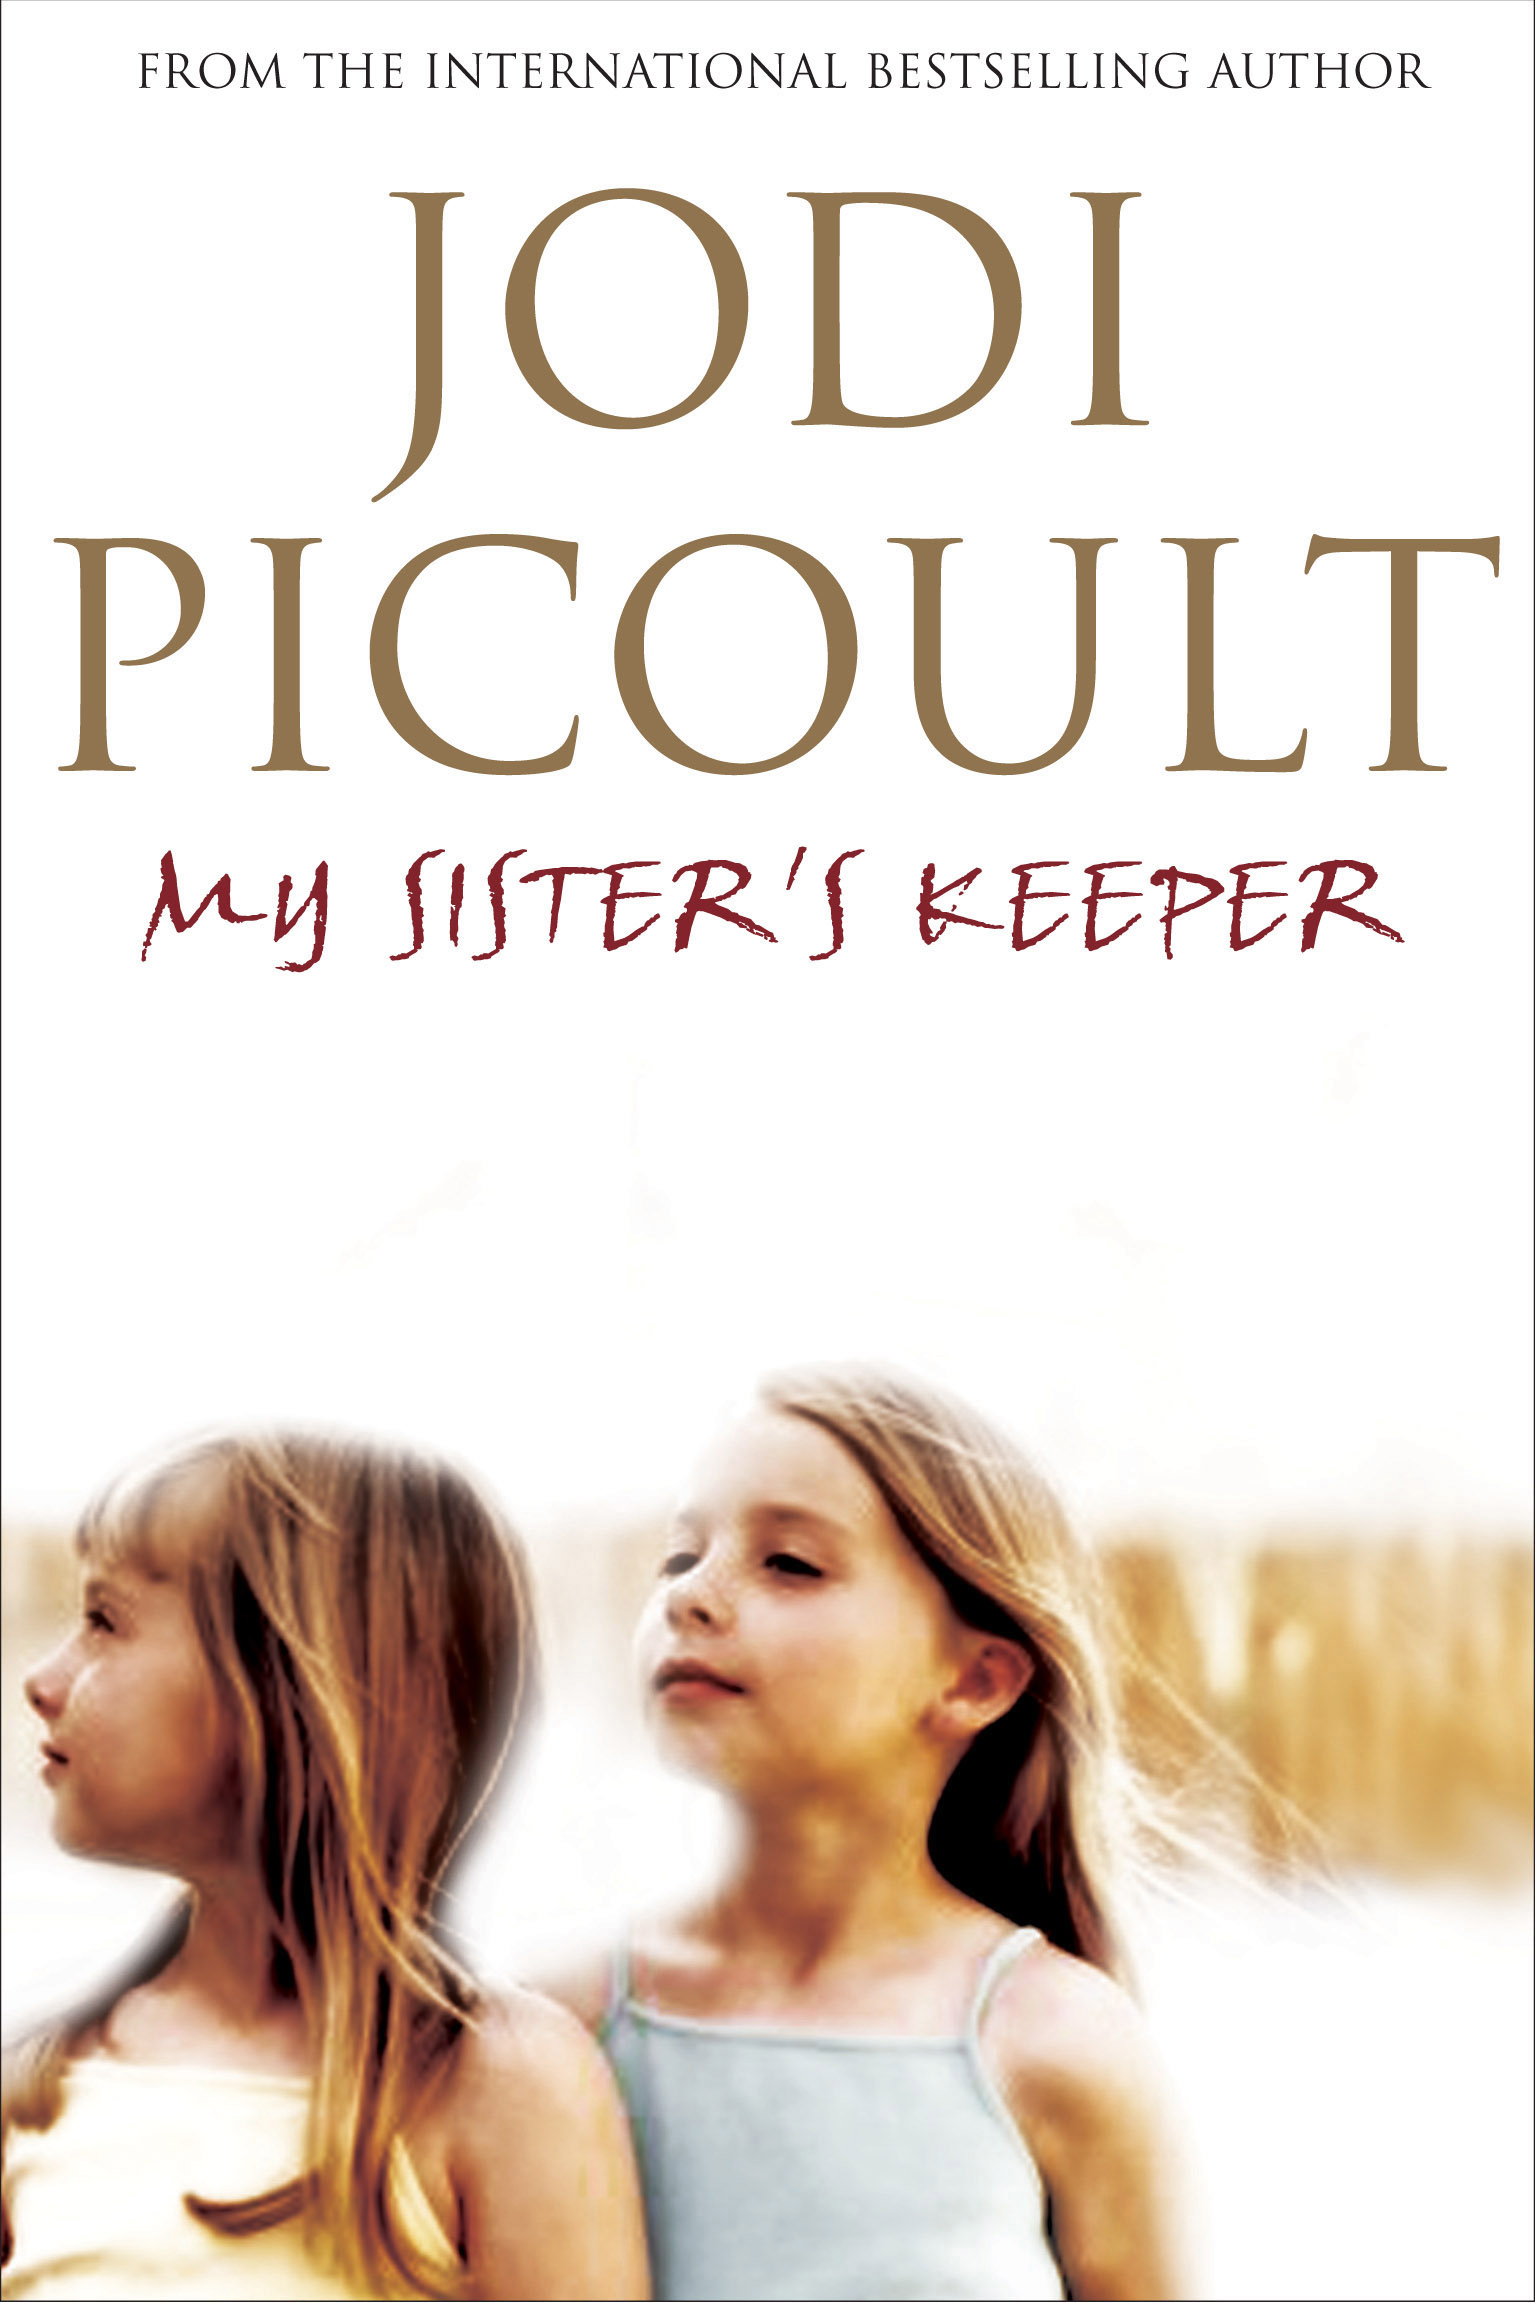 my sisters keeper by jodi picoult The difficult choices a family must make when a child is diagnosed with a serious disease are explored with pathos and understanding in this.